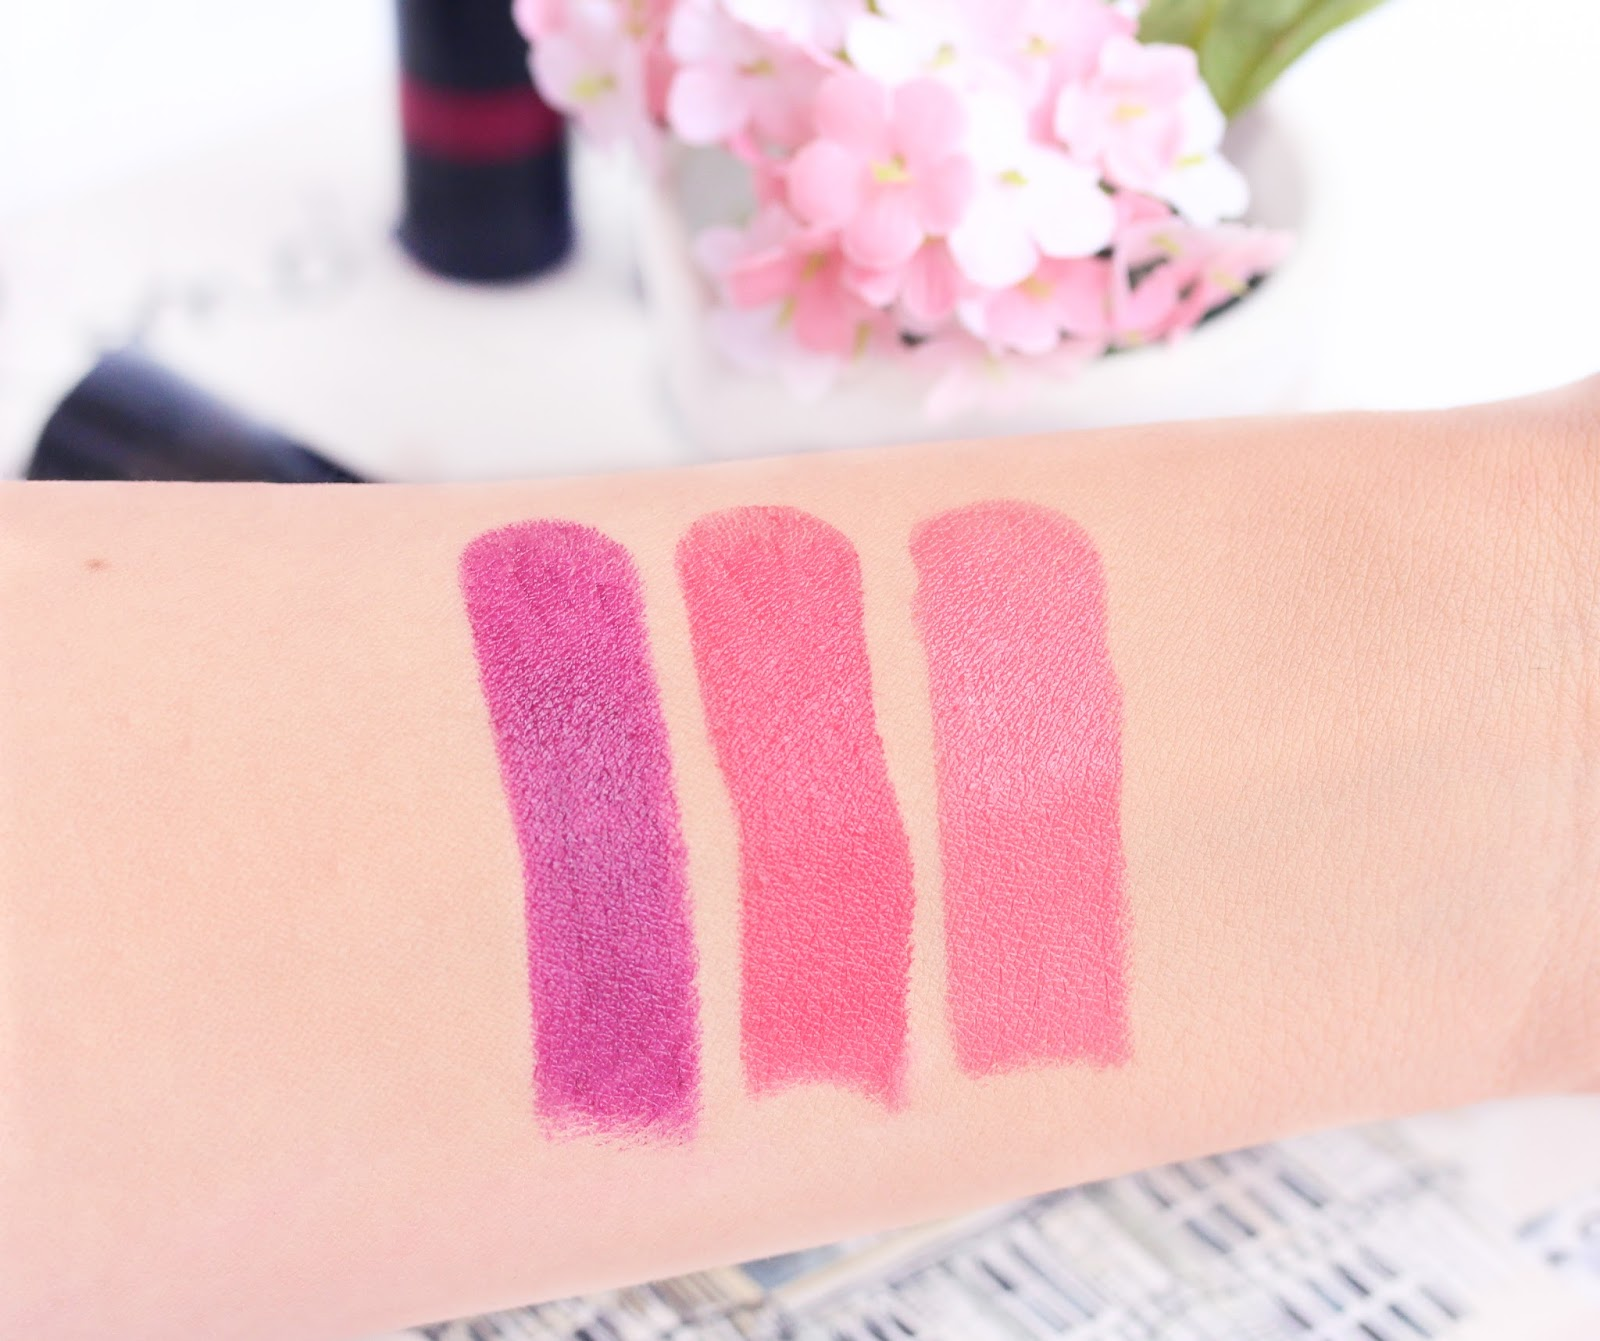 Rimmel The Only 1 Lipsticks Swatches